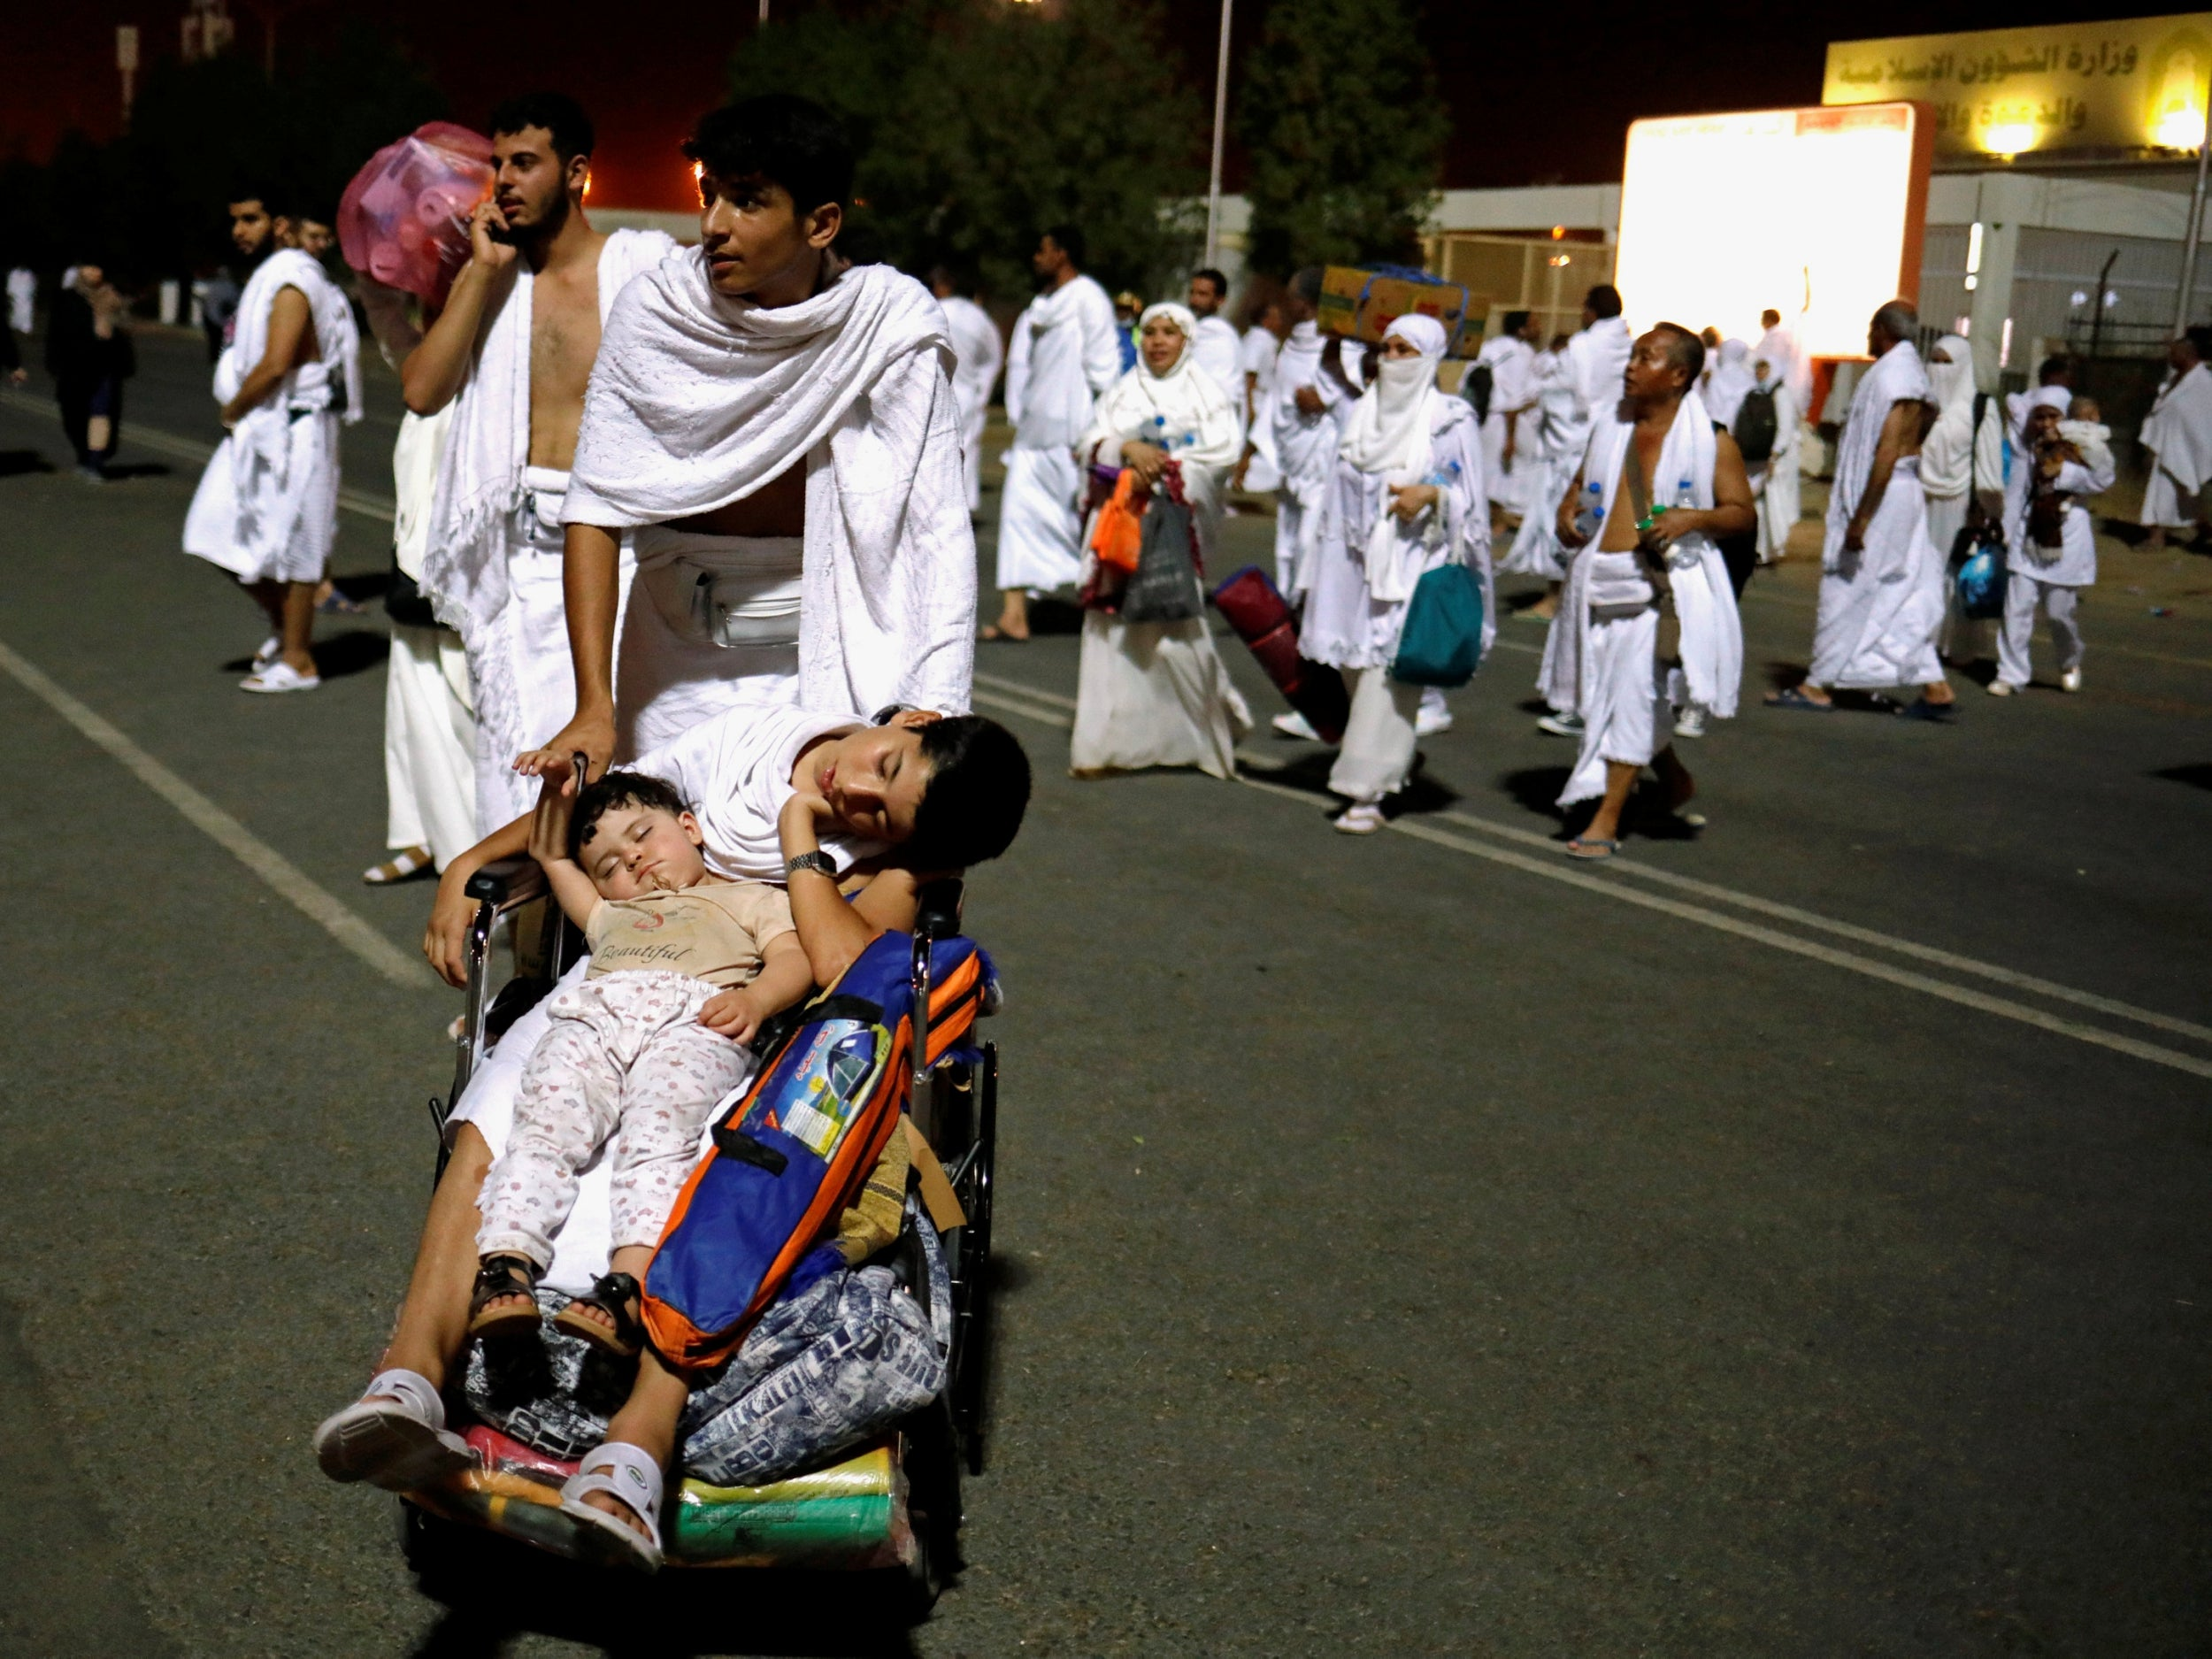 Eid Al-Adha 2019: When is it, how is it celebrated and how to wish